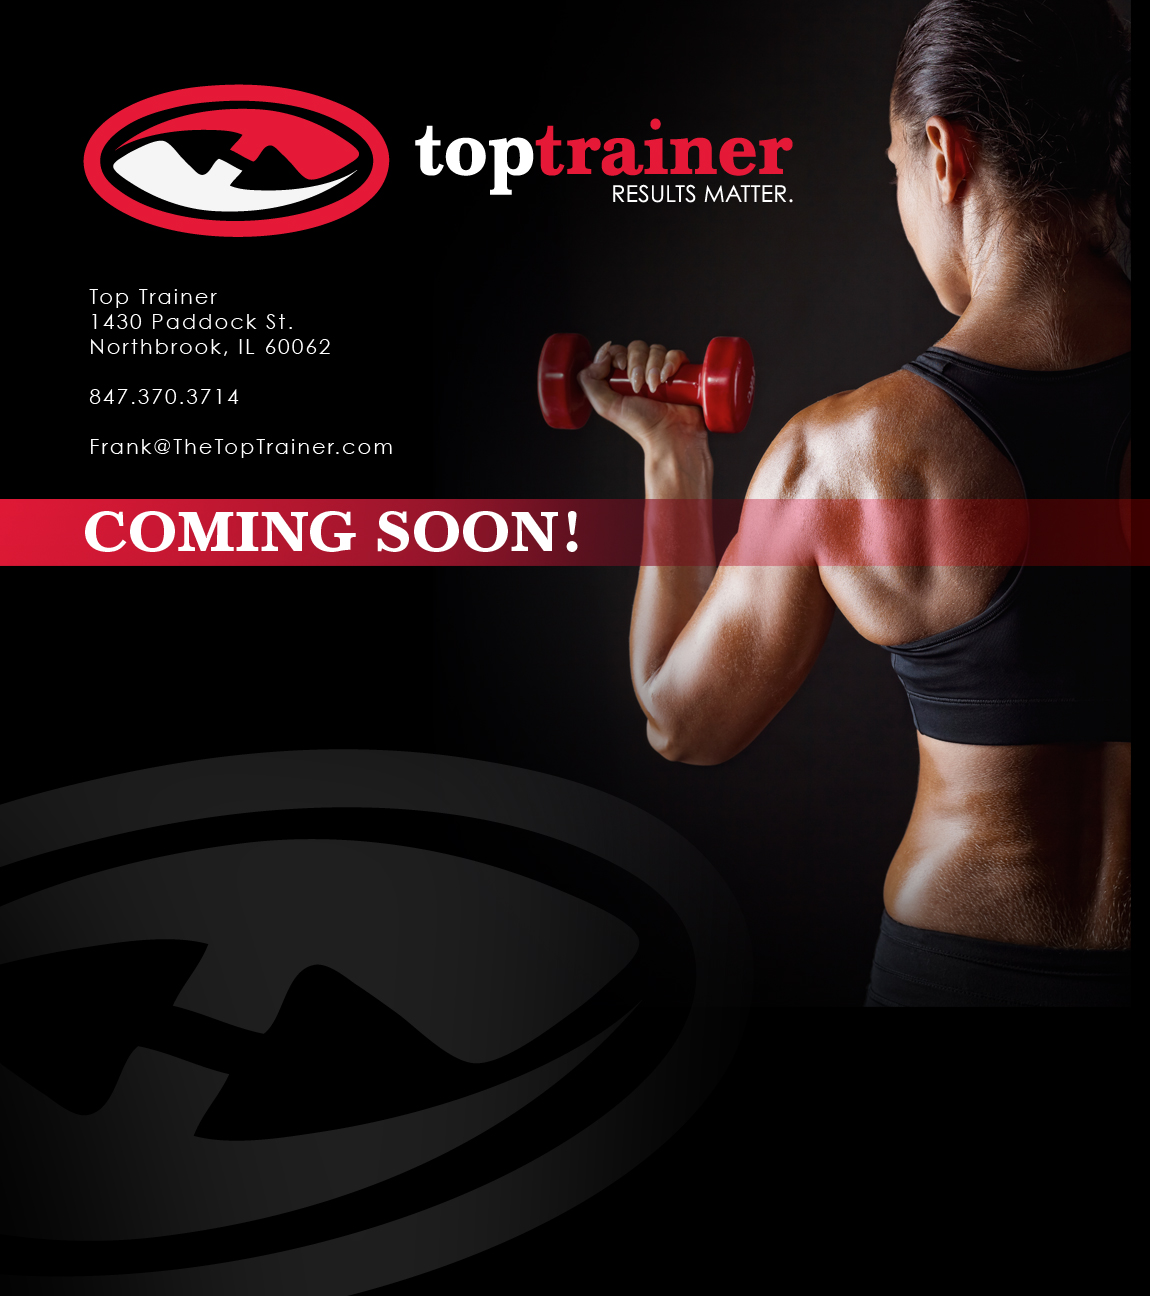 the future site of thetoptrainer.com .